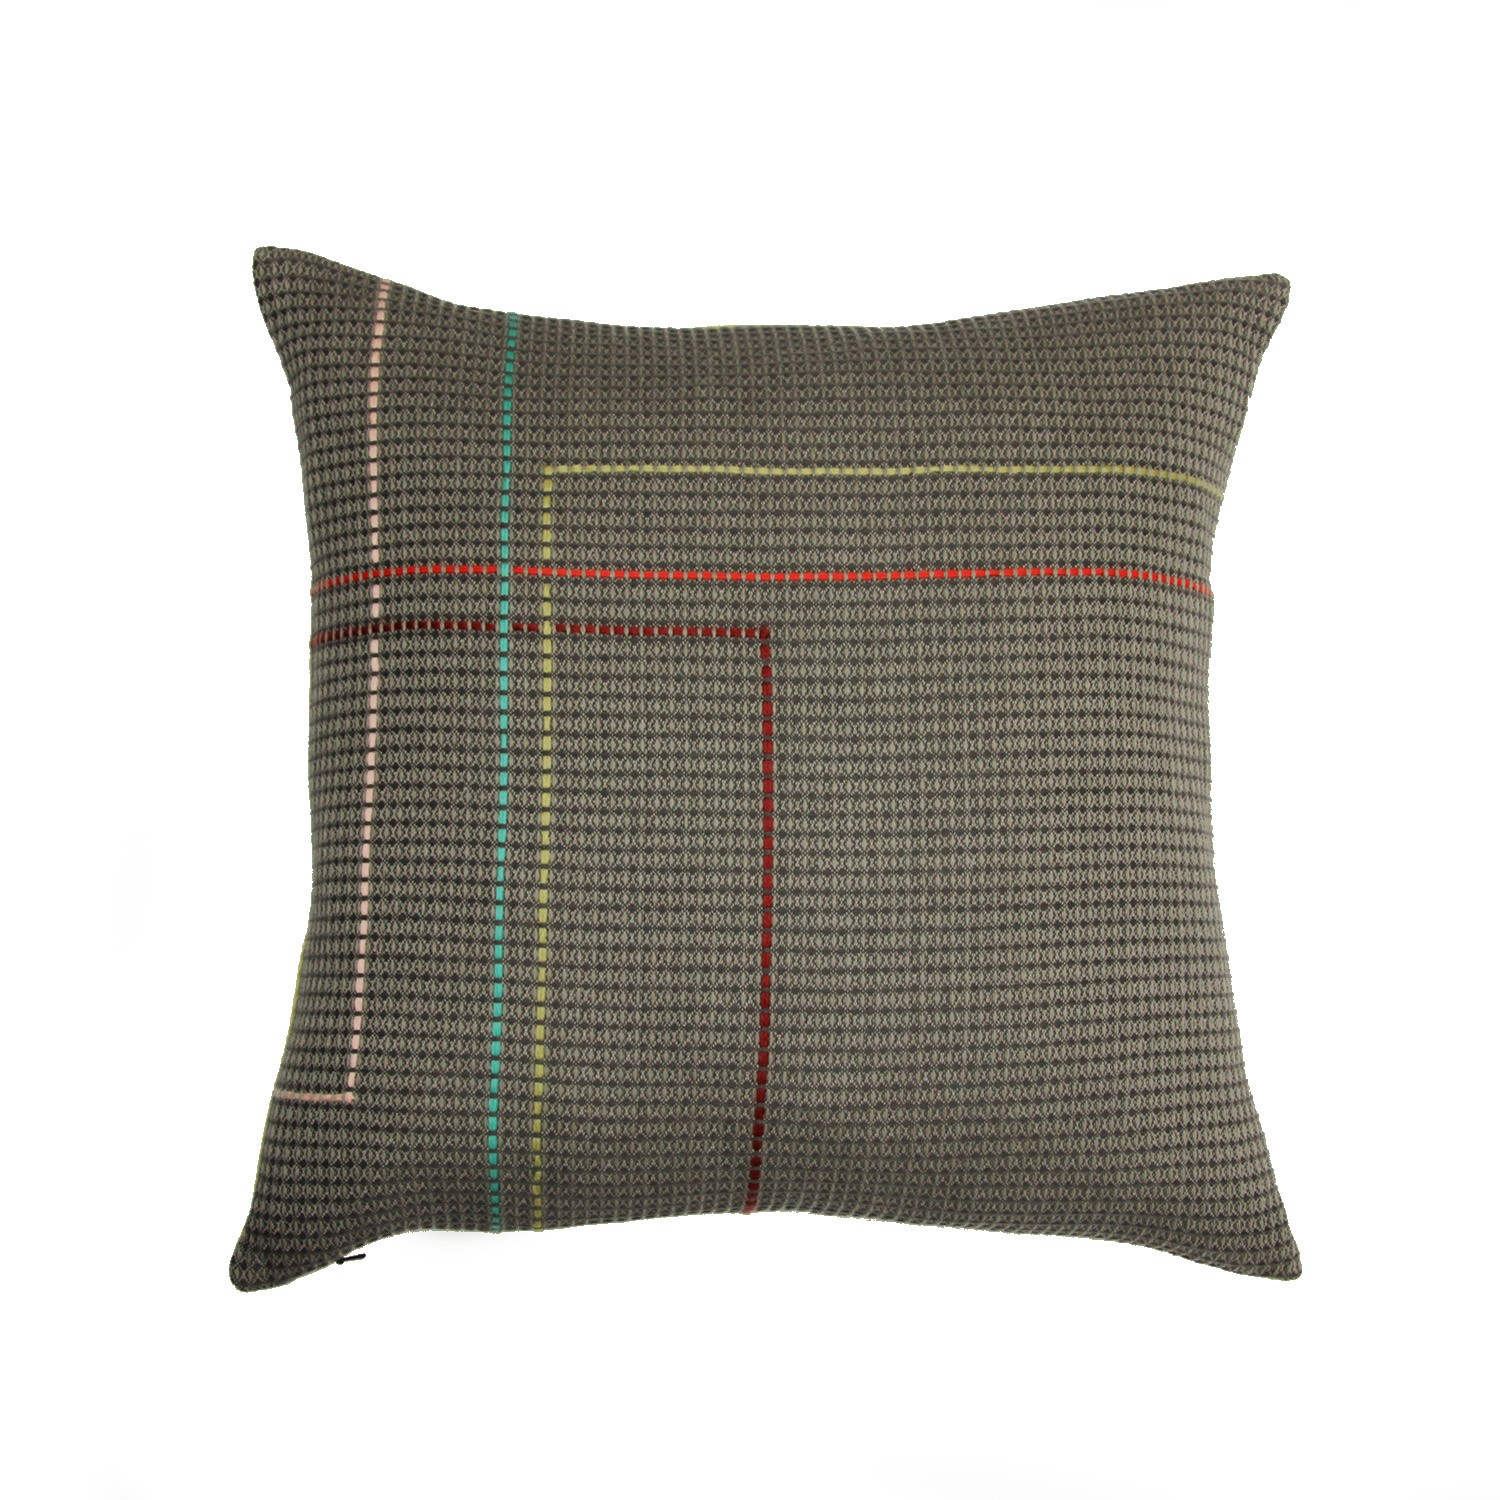 MERRION organic cotton hand embroidered taupe olive square cushion